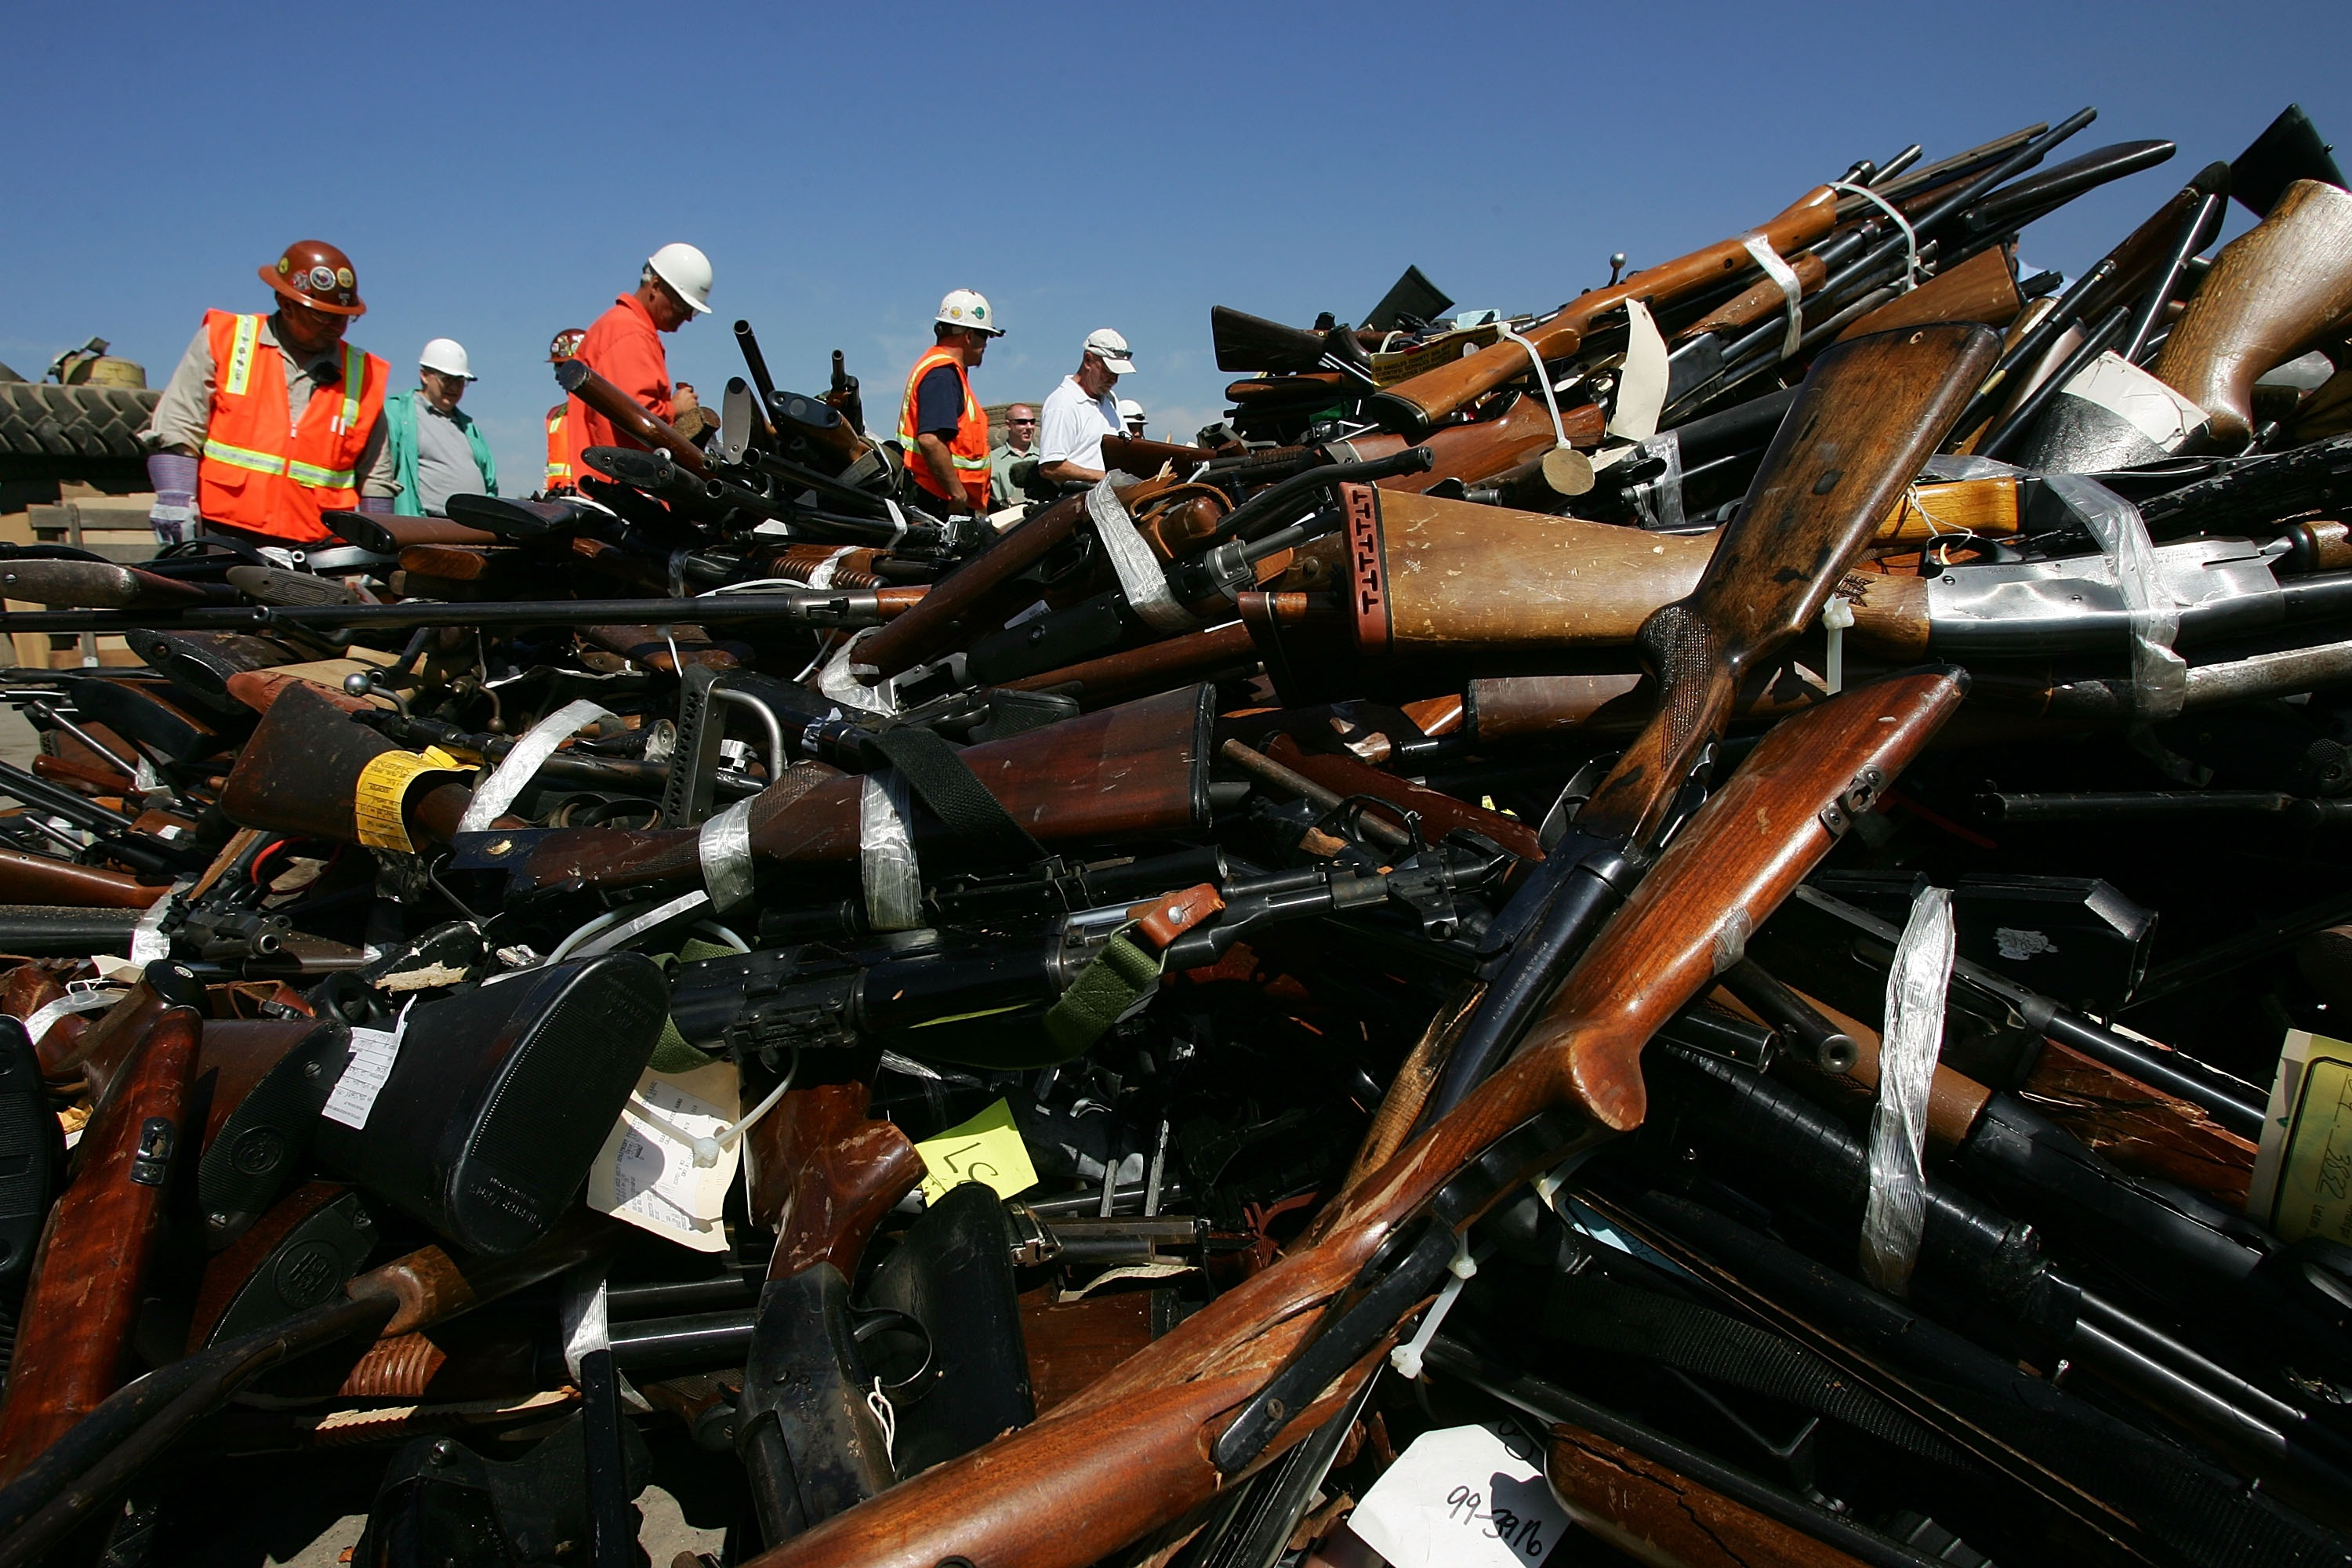 Steel workers look over a pile of more than 4,300 confiscated illegal weapons about to be melted down during the 14th Annual Gun Destruction program. (David McNew/Getty Images)